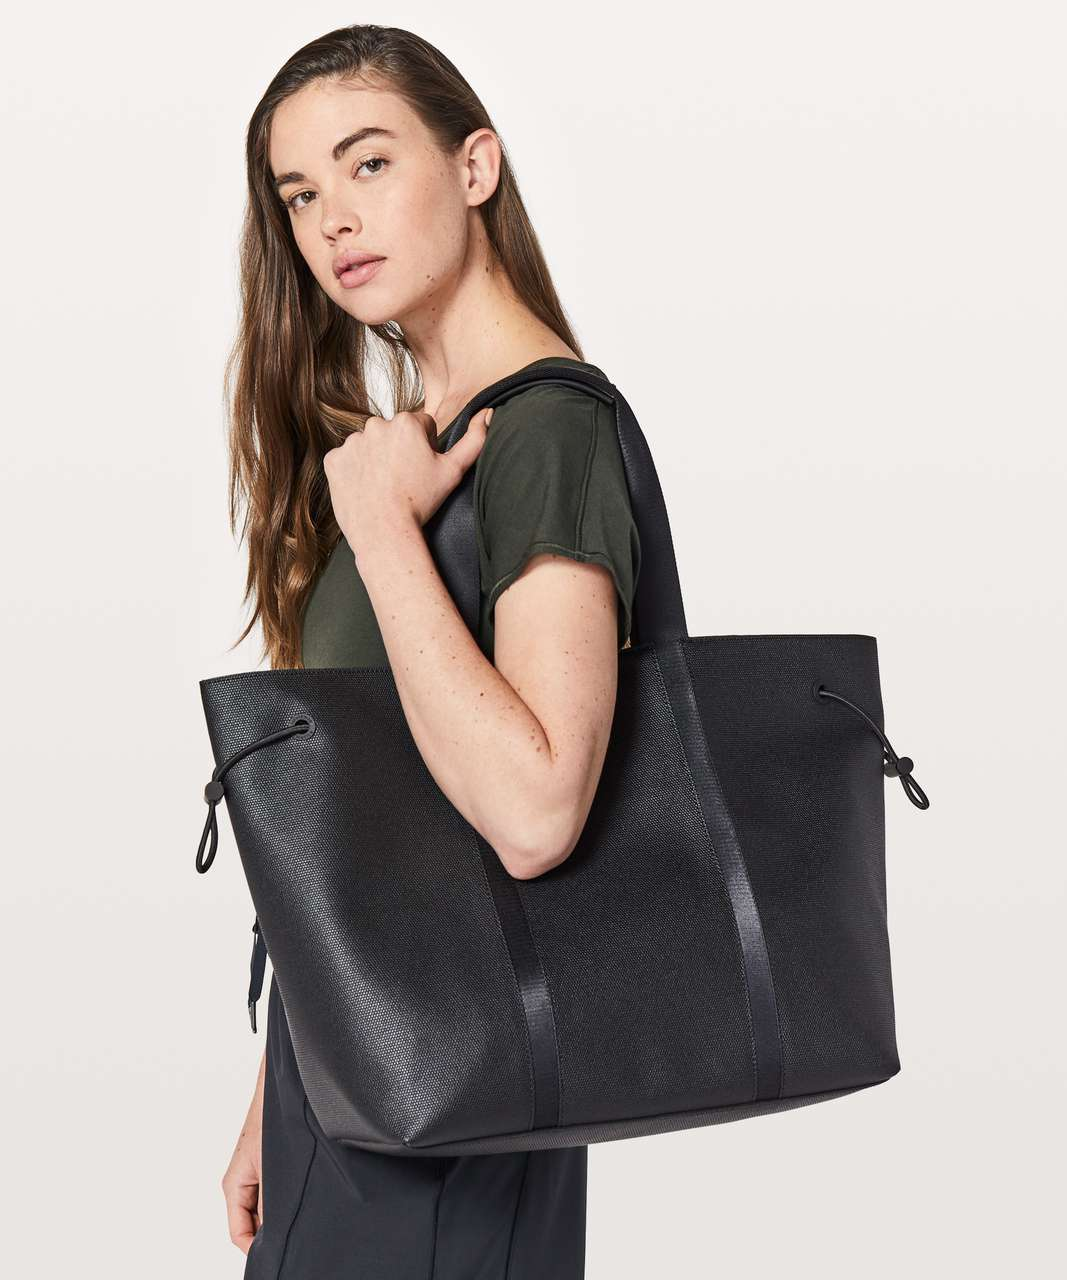 Lululemon Day Out Tote *16L - Black (First Release)